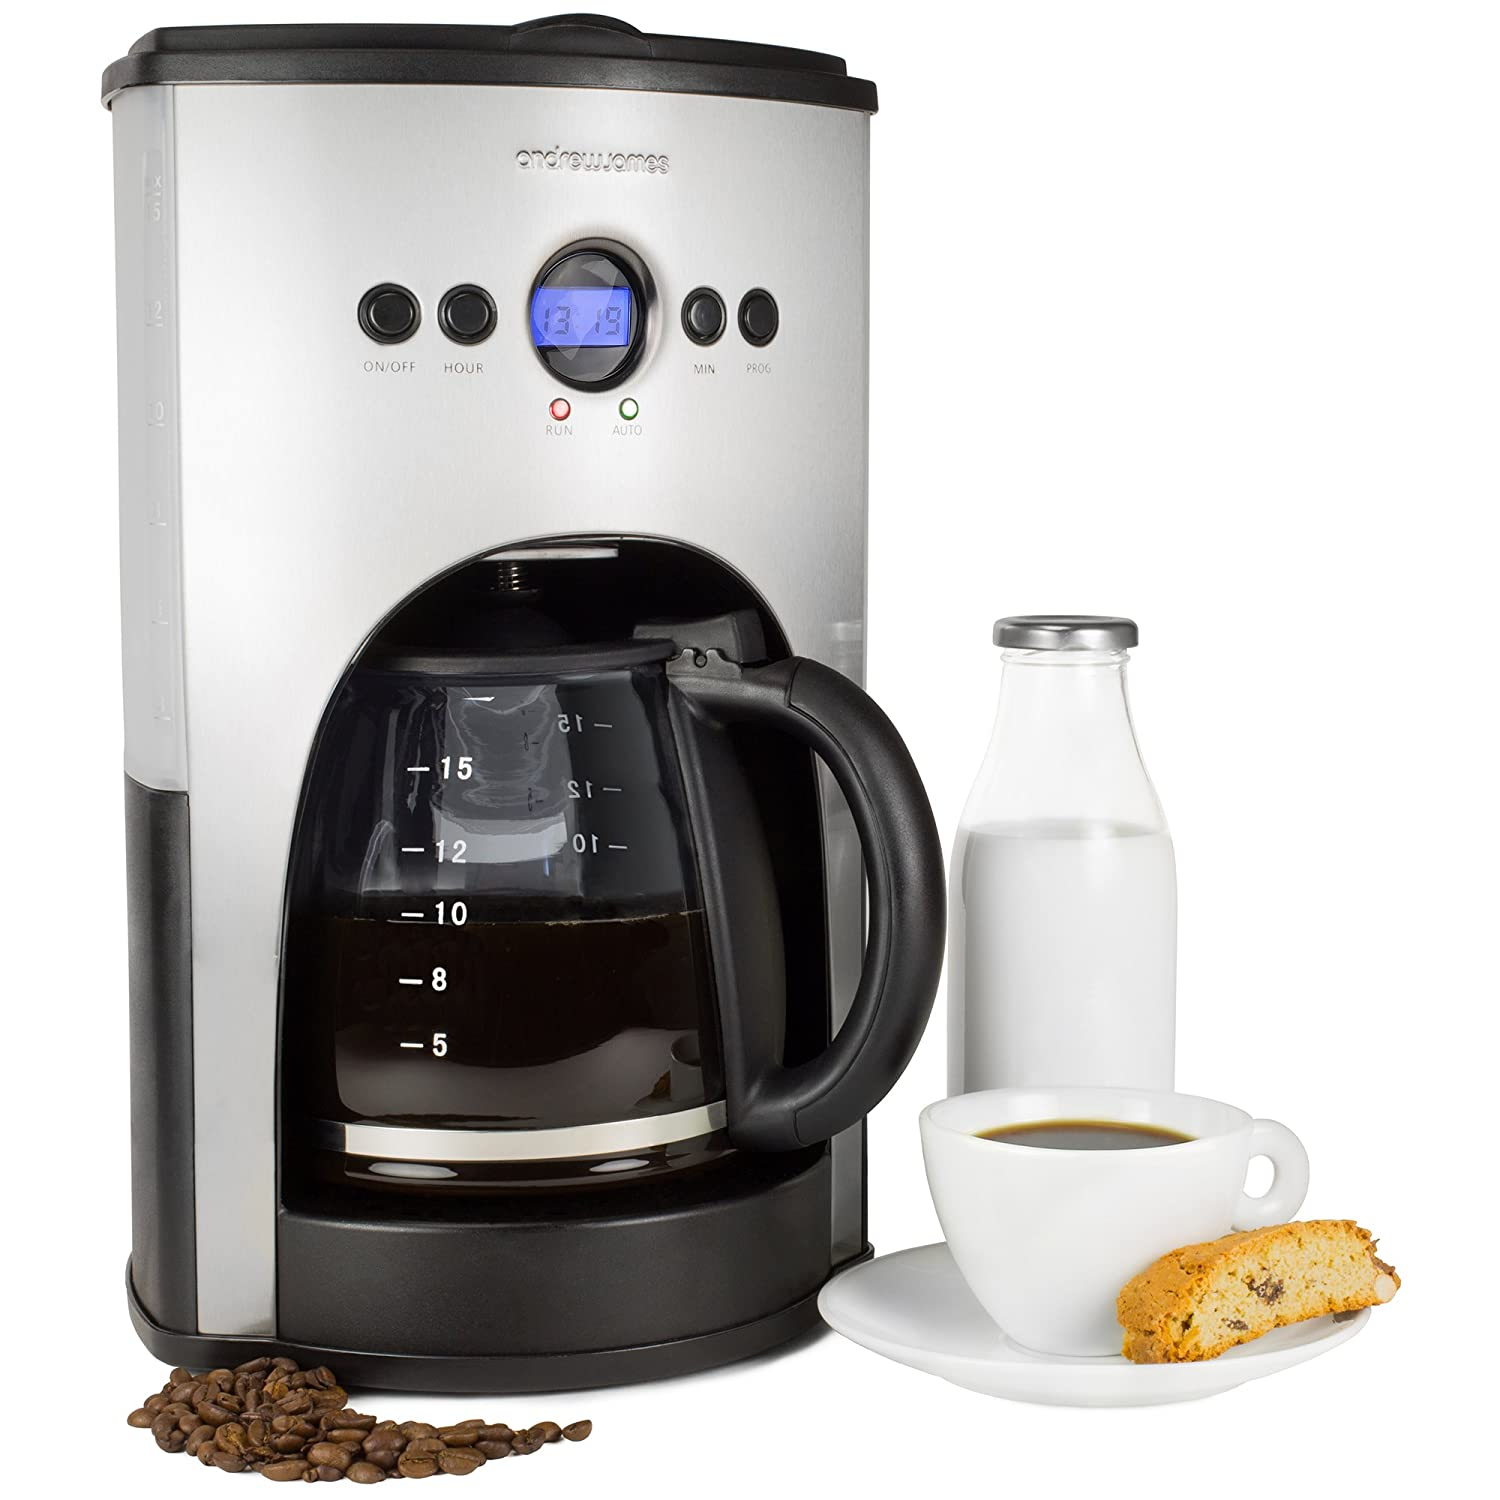 This Andrew James coffee maker is cheap and makes a very nice cup of coffee.